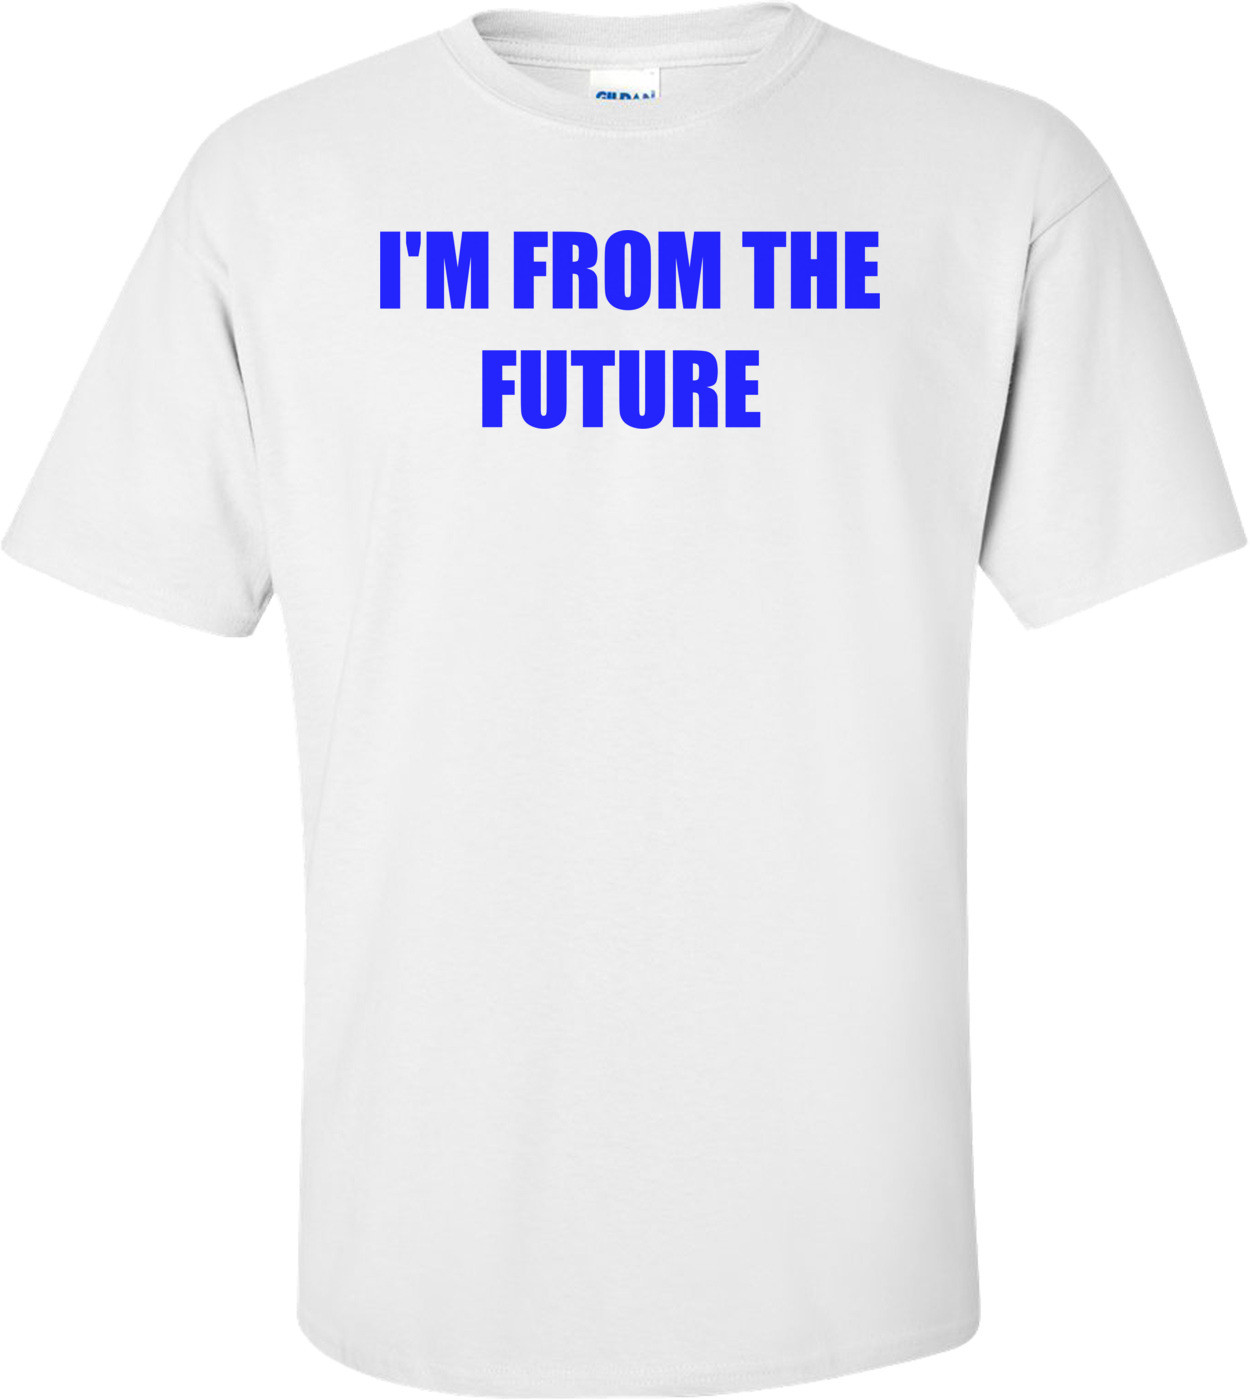 I'M FROM THE FUTURE  Shirt